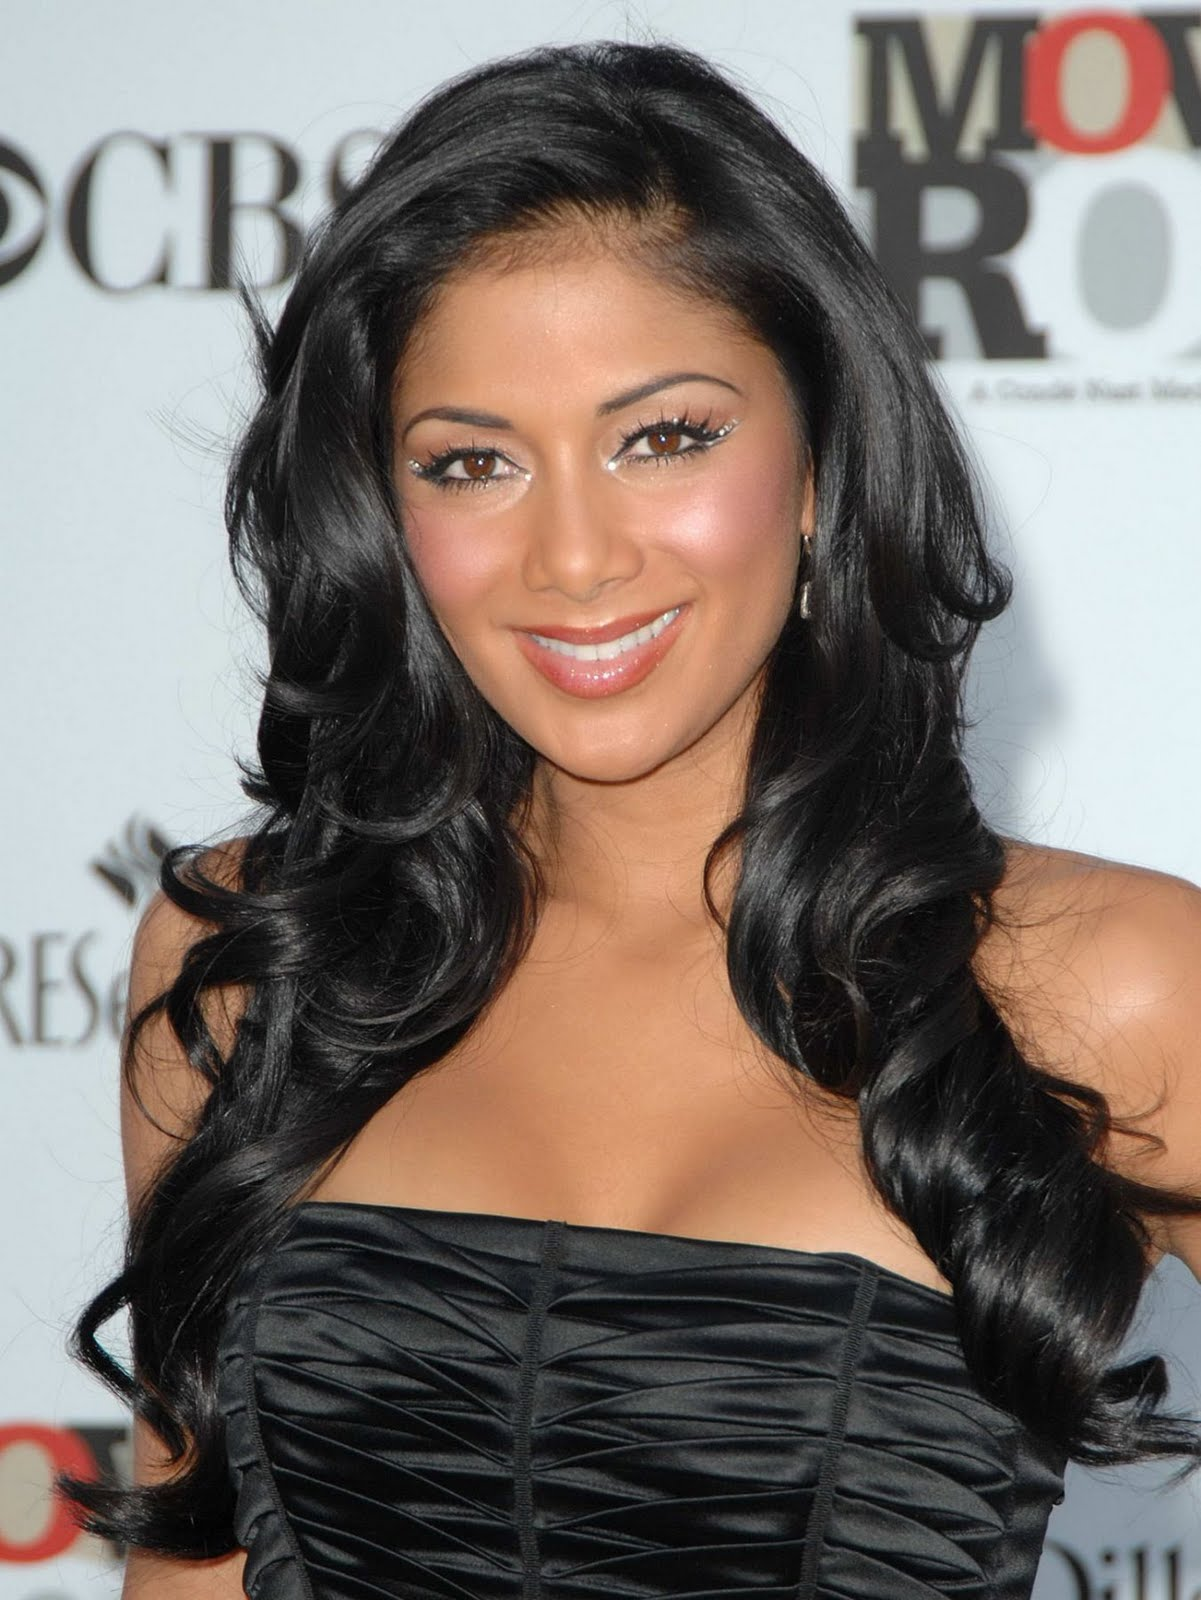 Nicole Scherzinger Fashionable Hairstyles Photos 02